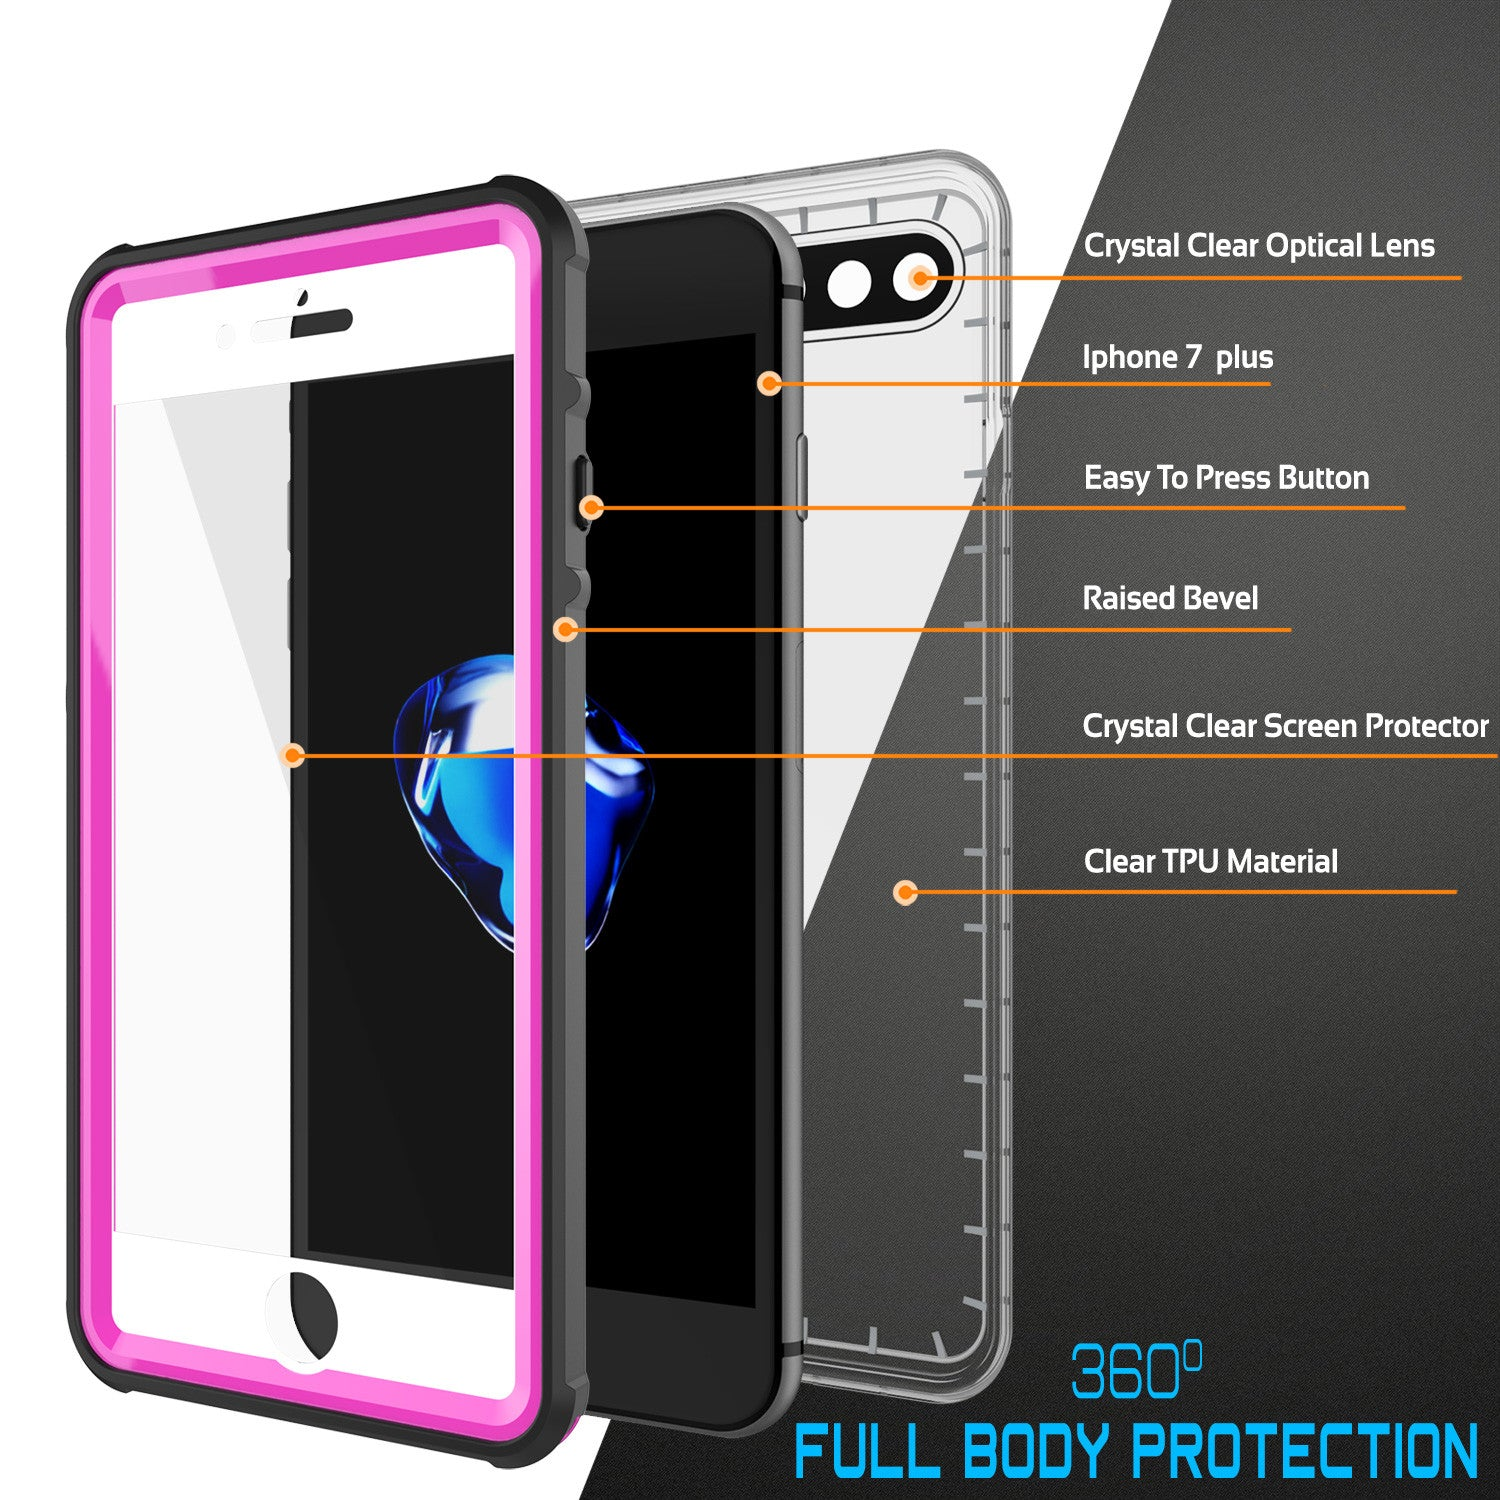 iPhone 7+ Plus Waterproof Case, PUNKcase CRYSTAL Pink W/ Attached Screen Protector  | Warranty